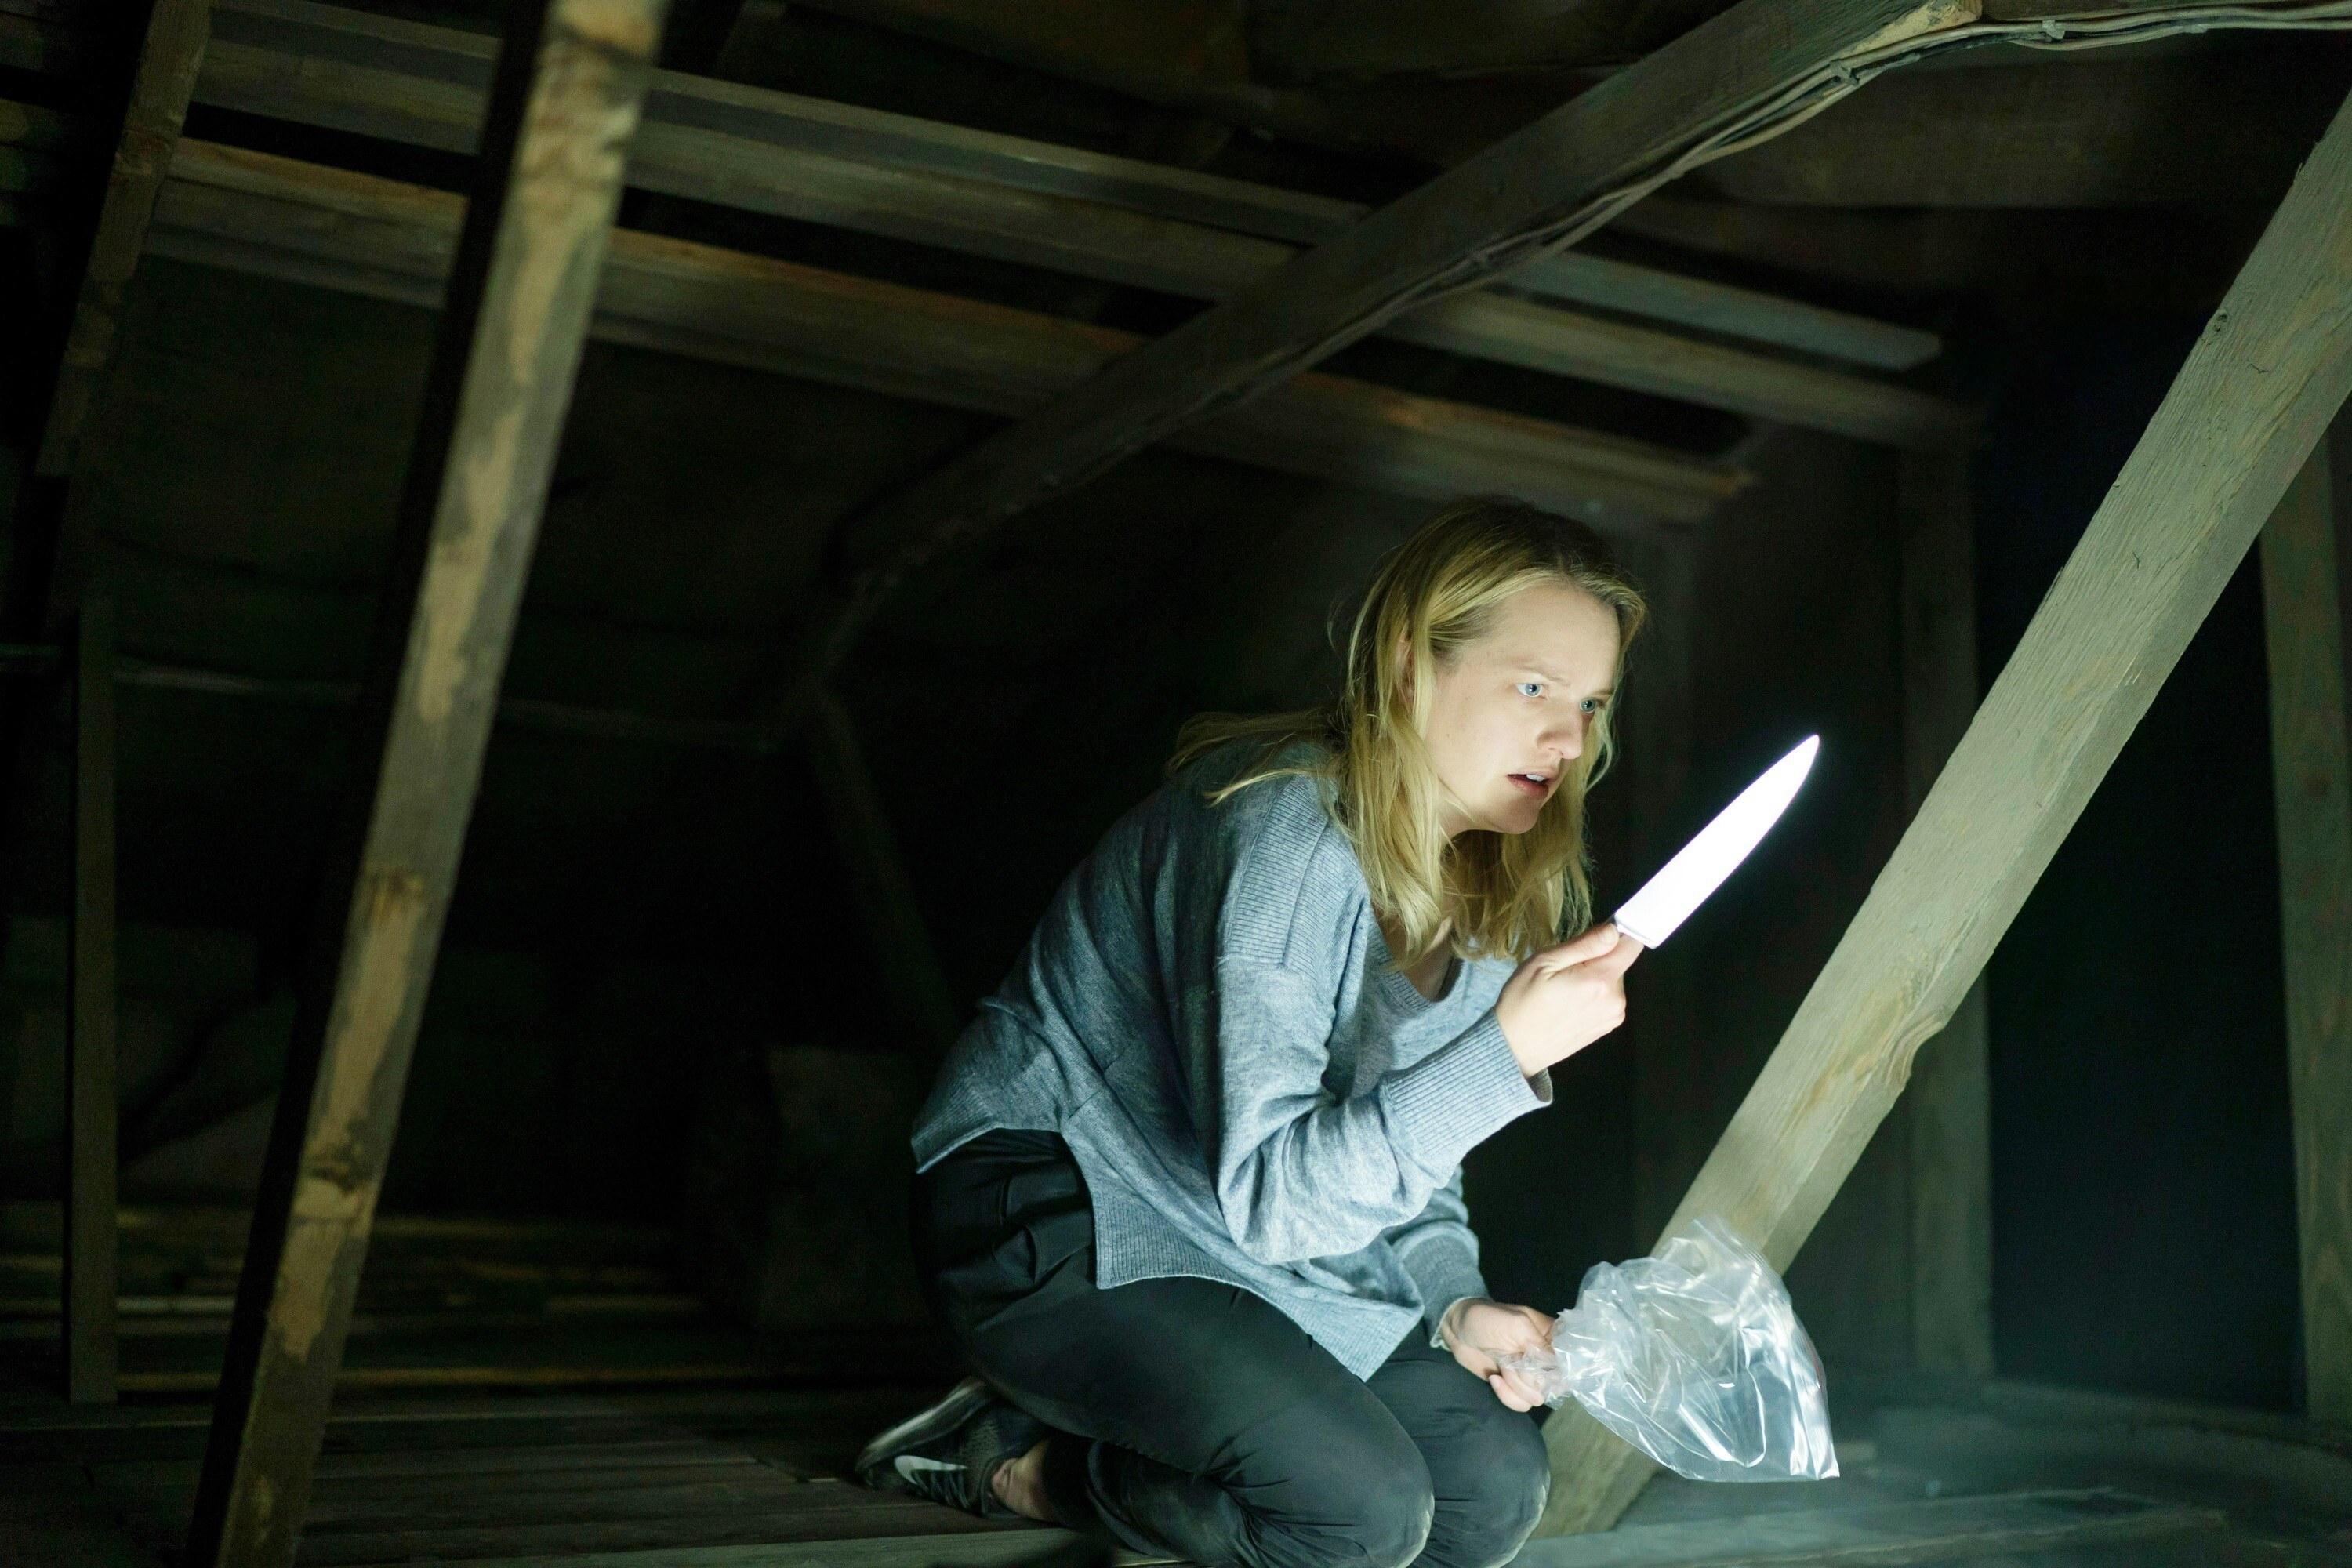 Elisabeth Moss in an attic with a knife